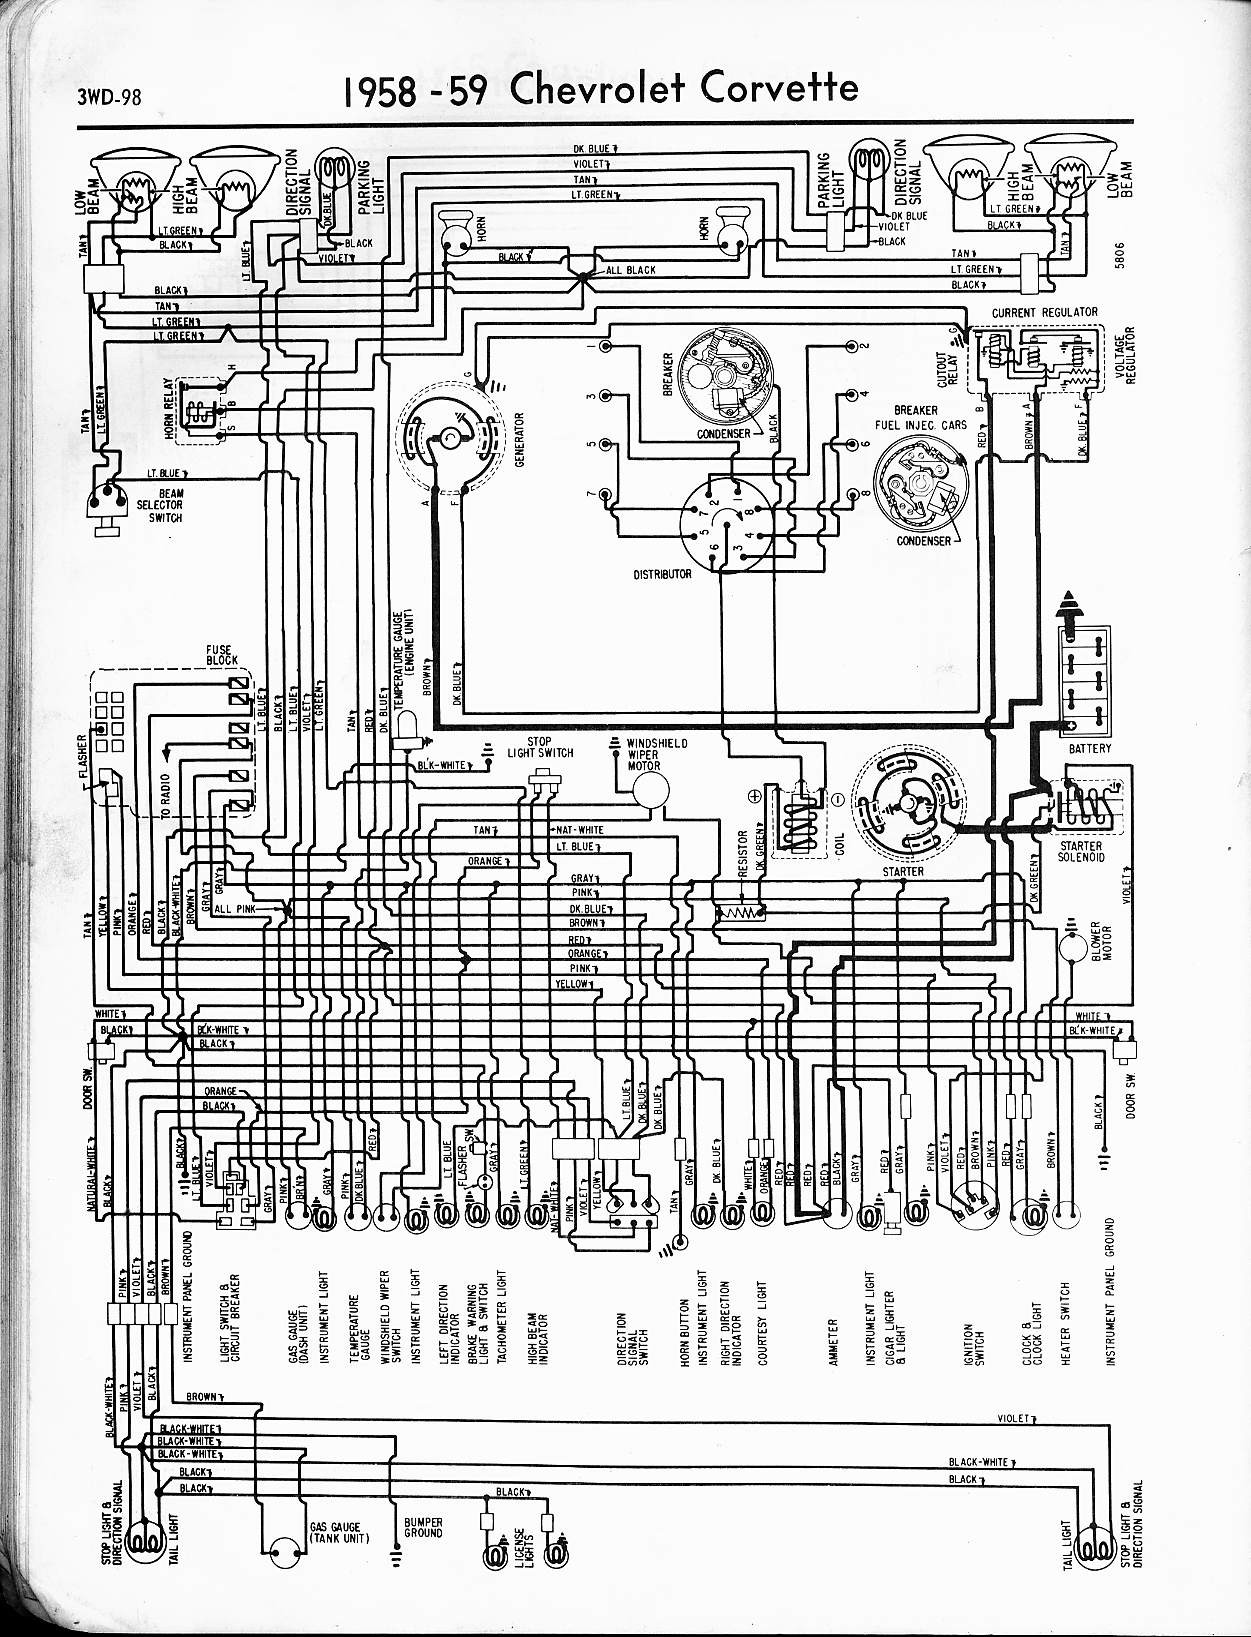 1976 Chevrolet Truck Wiring Diagram Library Chevy Schematic News U2022 Gmc